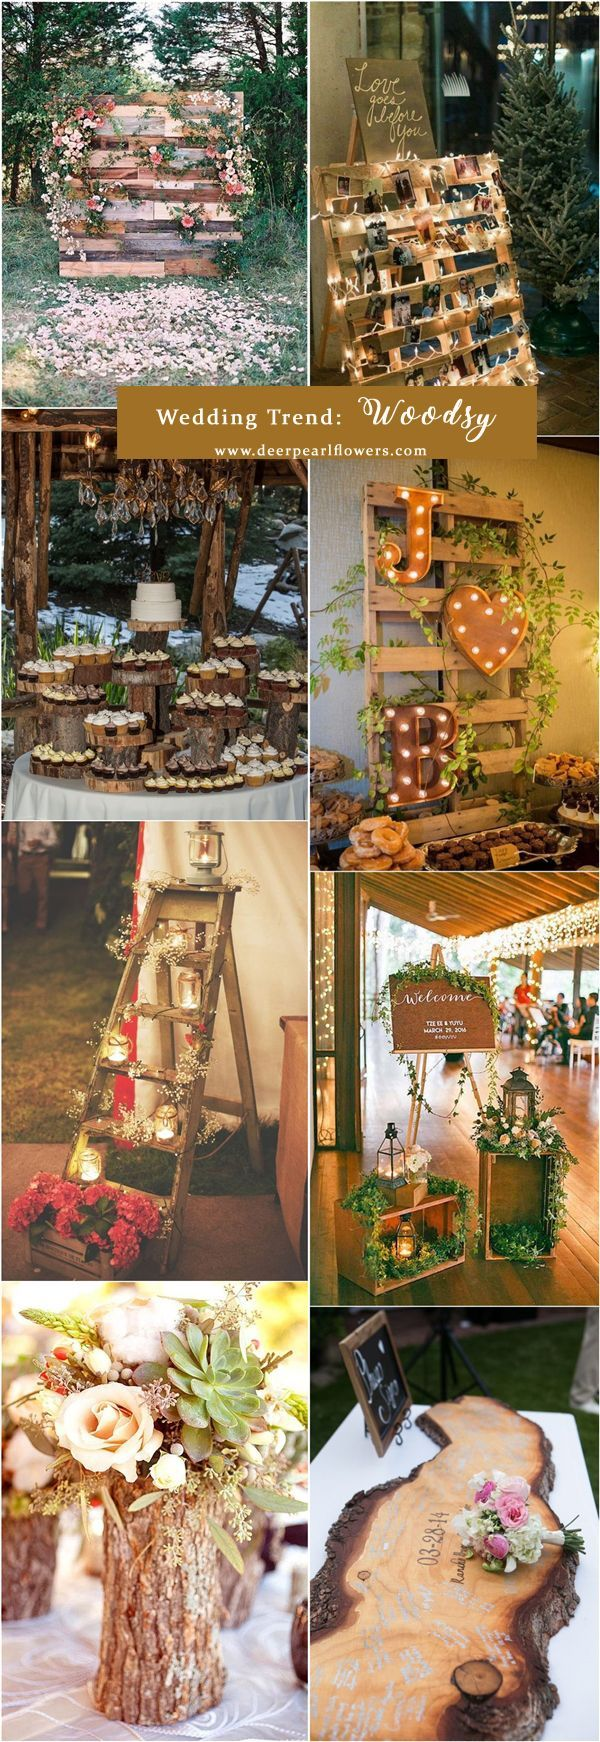 Wedding room decoration ideas 2018  Top  Wedding Trends for  Youull Love  Rustic Wedding Ideas